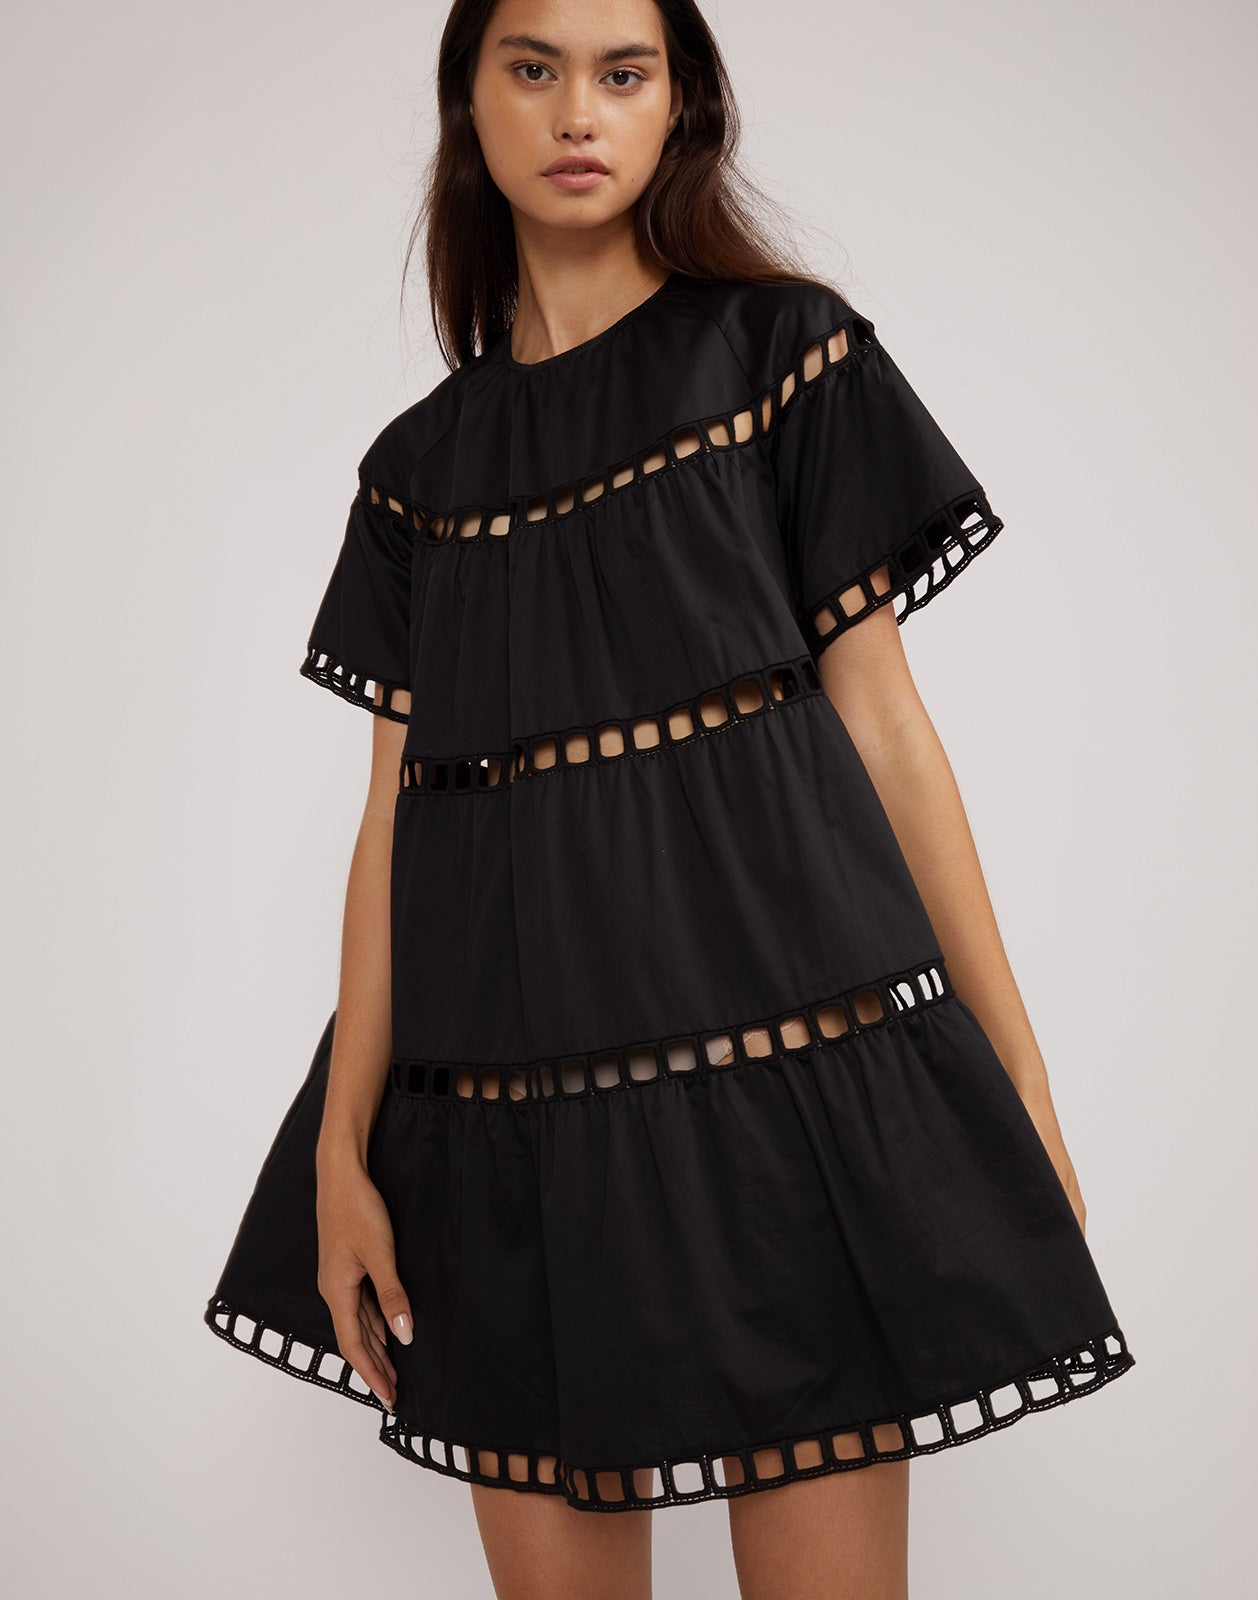 Close front view of the black cotton eyelet swing dress.